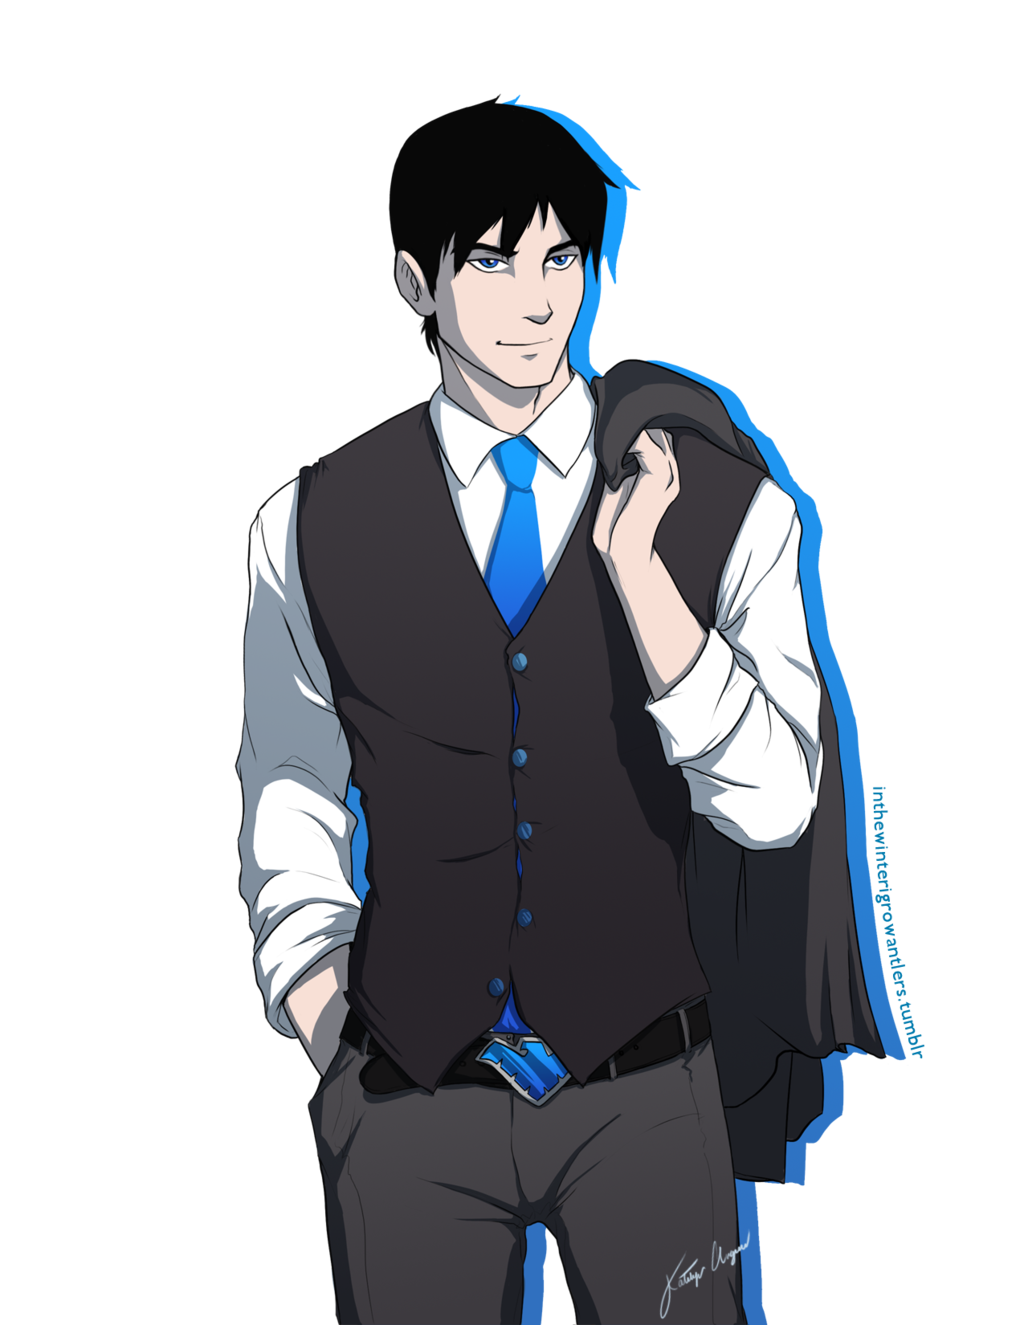 dapper dick grayson young justice photo 33647272 fanpop 1024x1325